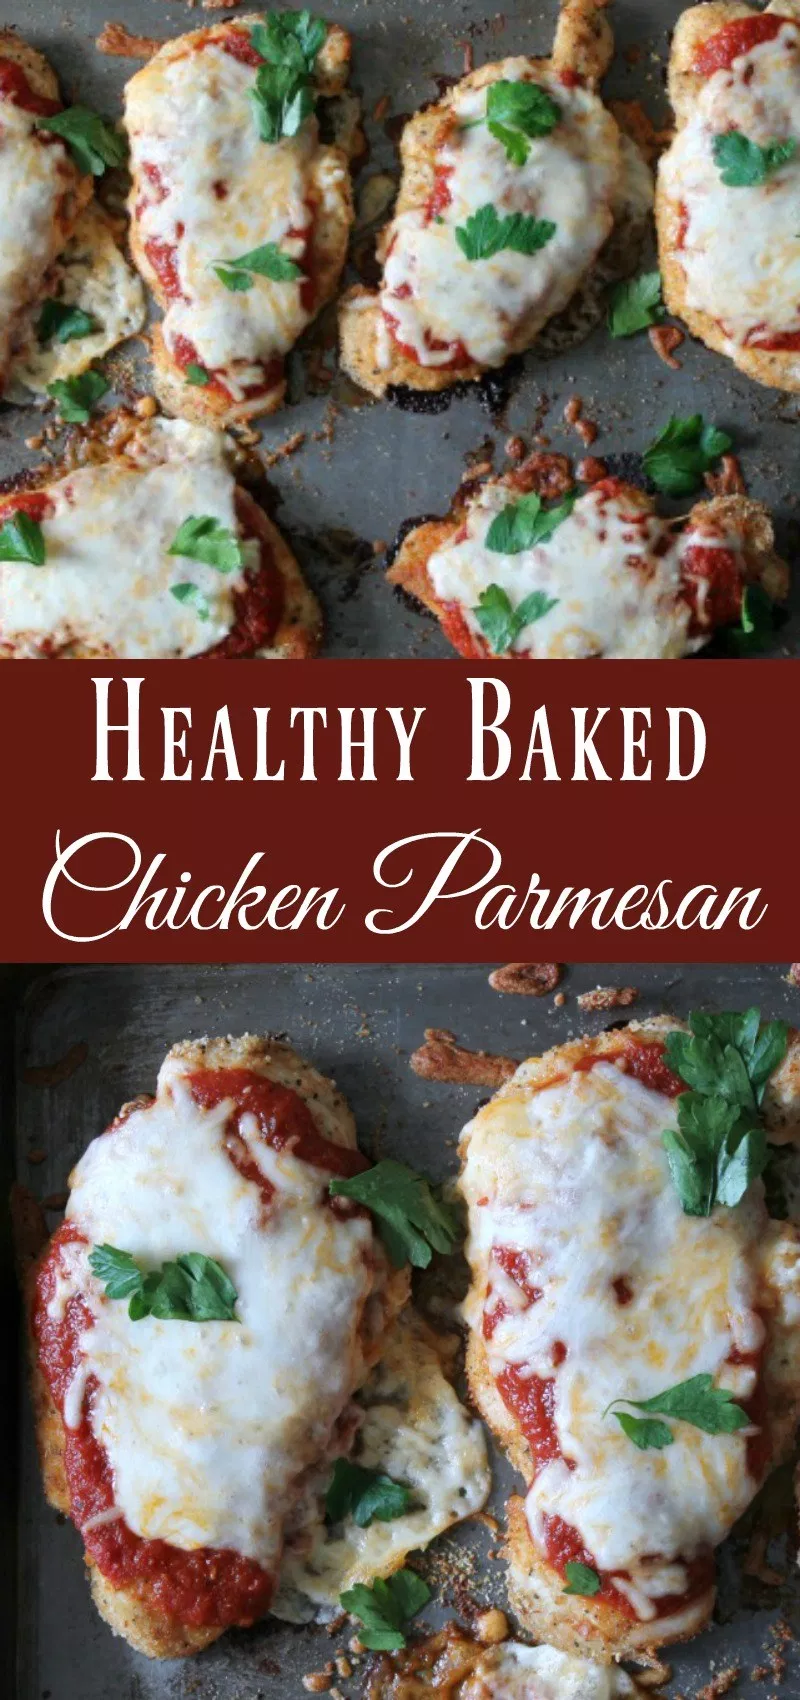 Baked Chicken Parmesan {With Video!} - Organize Yourself Skinny